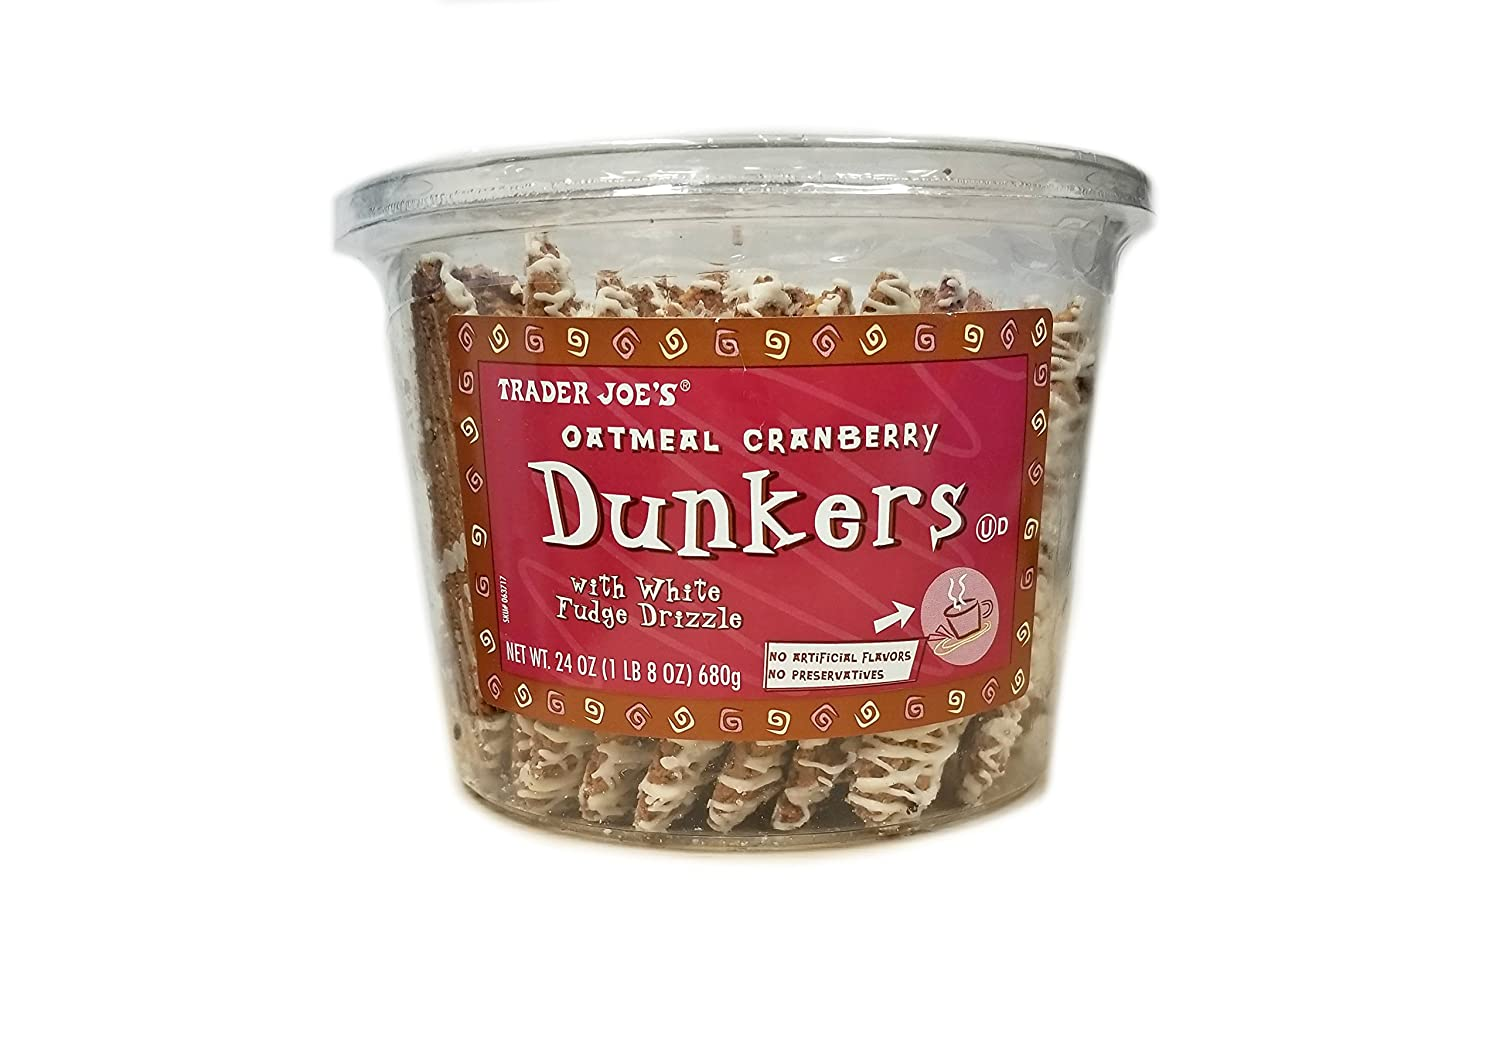 Trader Joe's Oatmeal Cranberry Dunkers with White Fudge Drizzle (24oz) 1 LB 8 oz